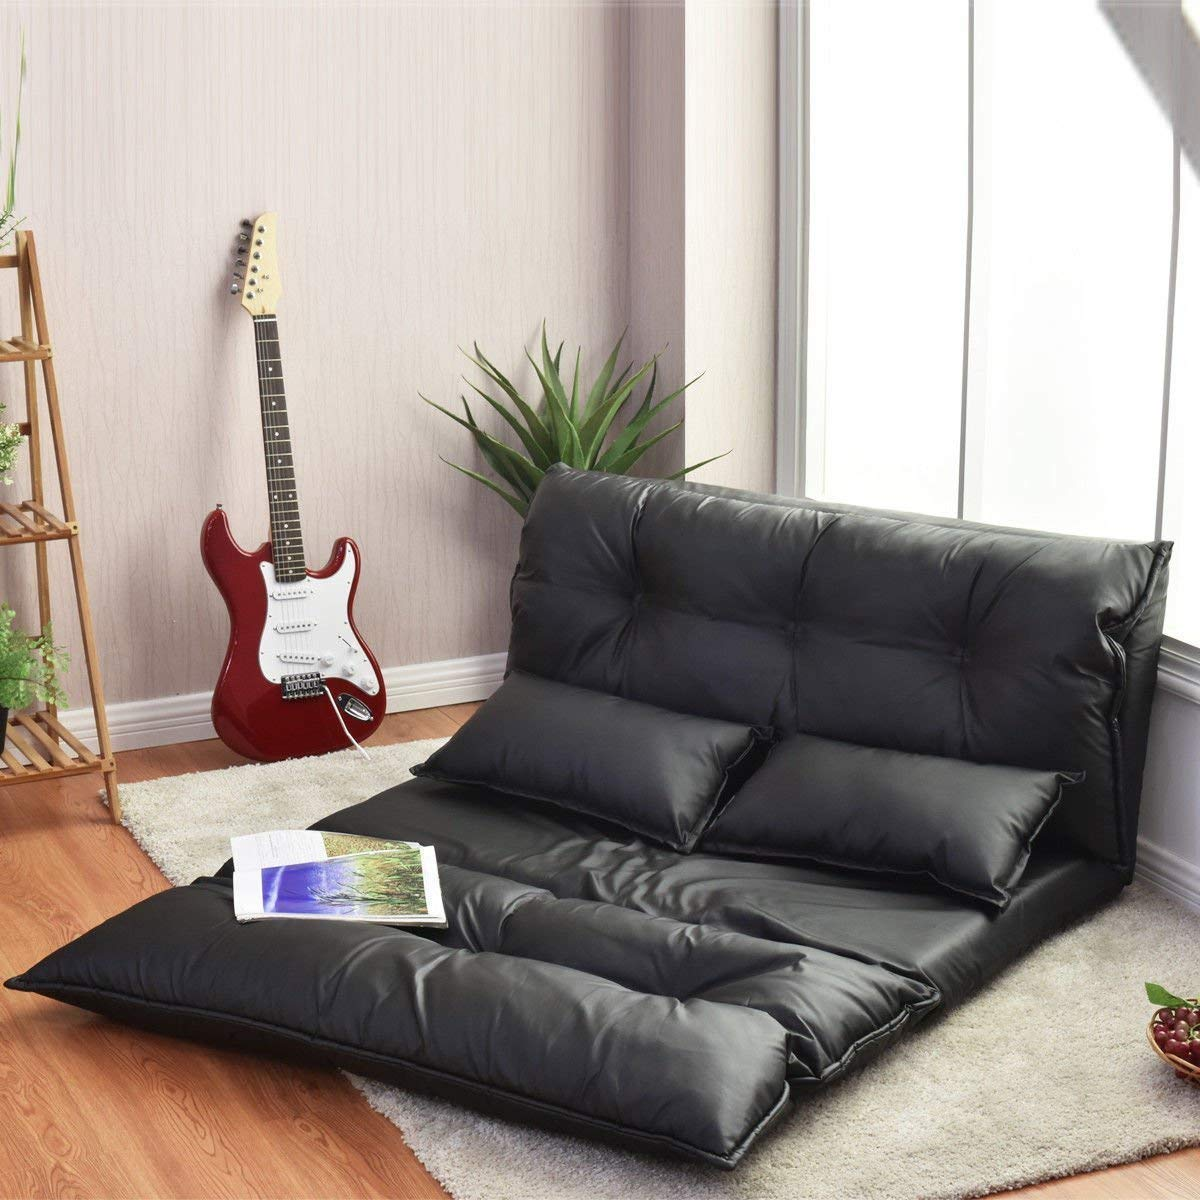 Giantex Floor Sofa PU Leather Leisure Bed Video Gaming Sofa with Two Pillows, Black by Giantex